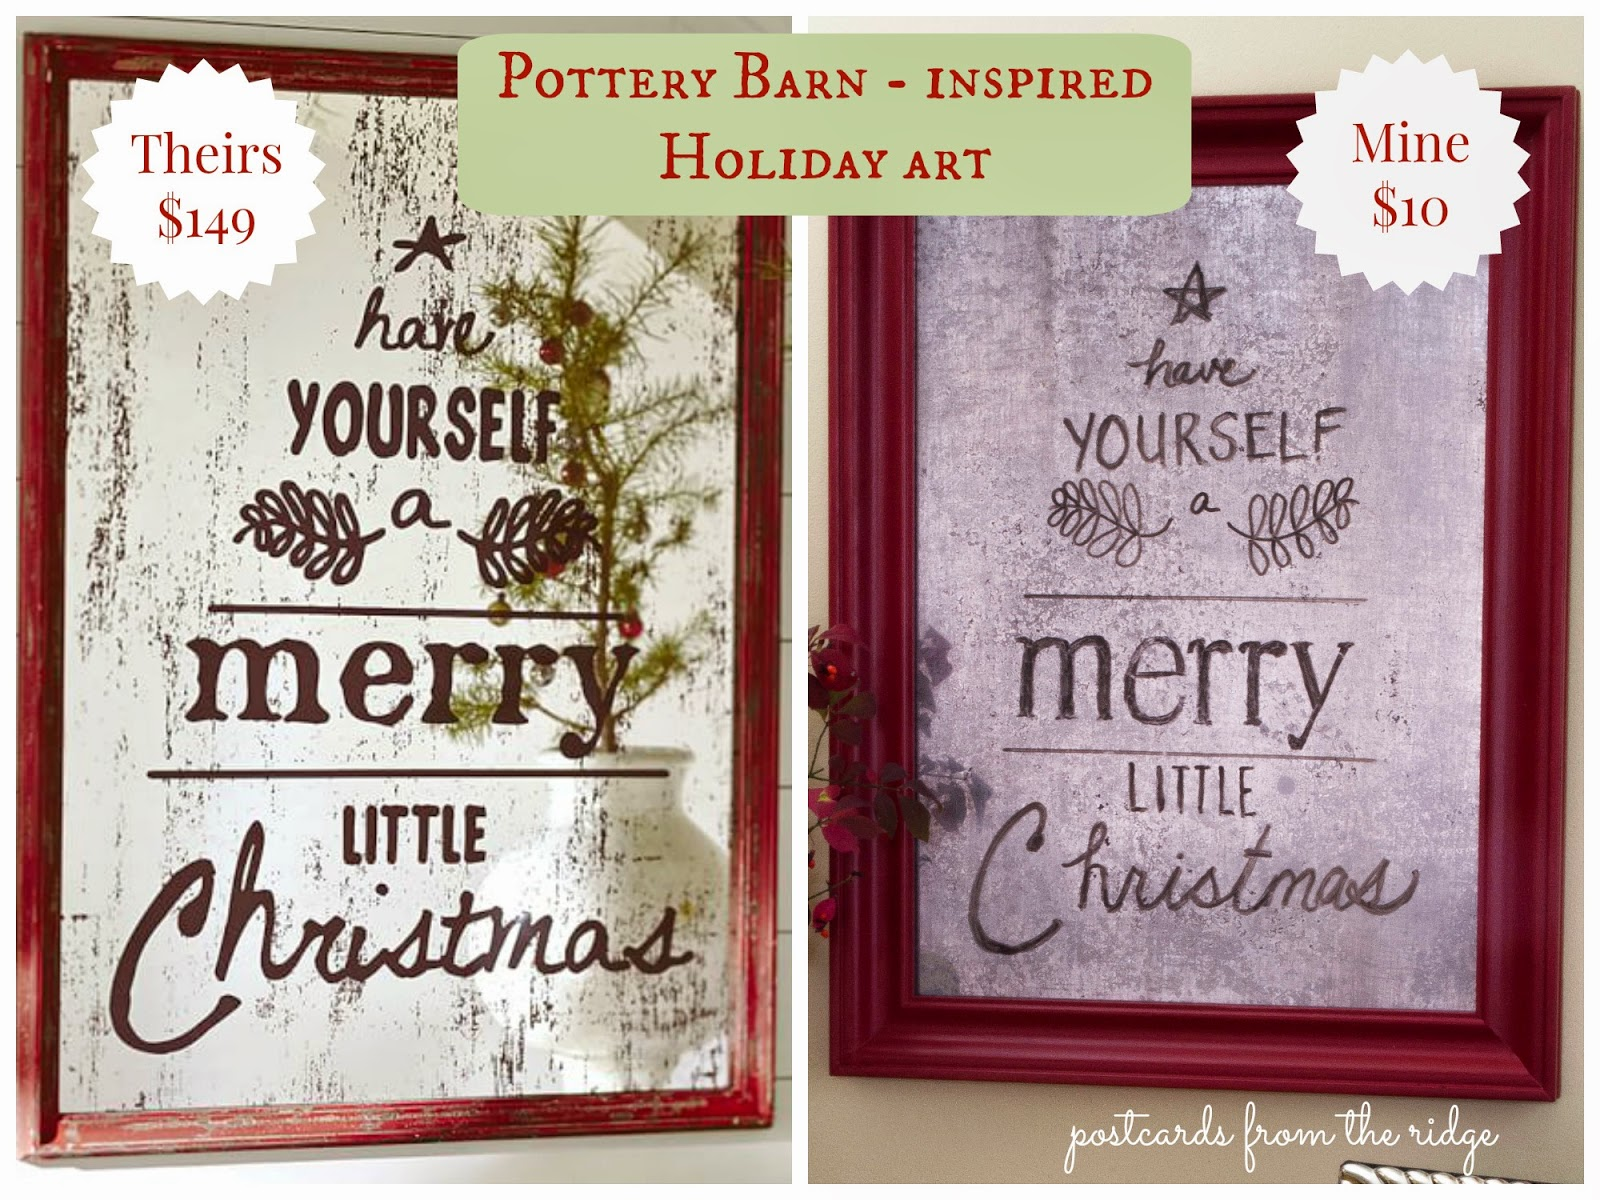 Pottery Barn inspired holiday mercury glass wall art for $10! Their version is $149. Gotta try this!